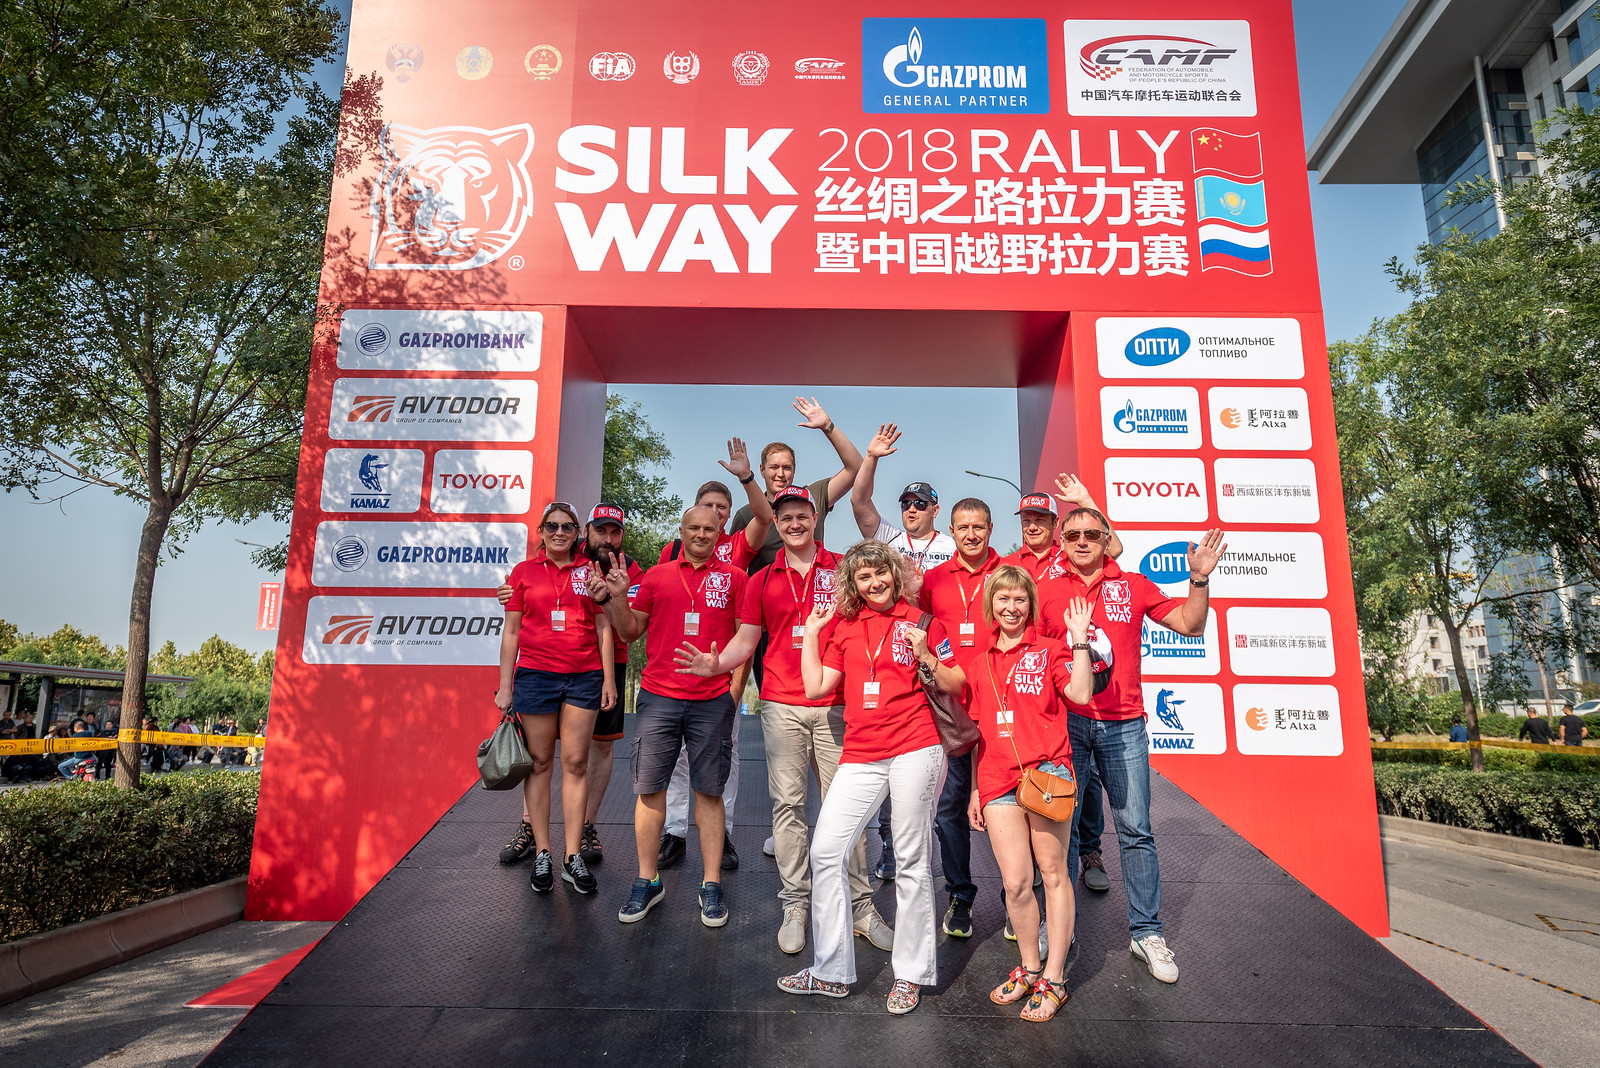 Guest program for B2B partners of Gazprom Neft PJSC at Chinese stages of Silk Way Rally 2018